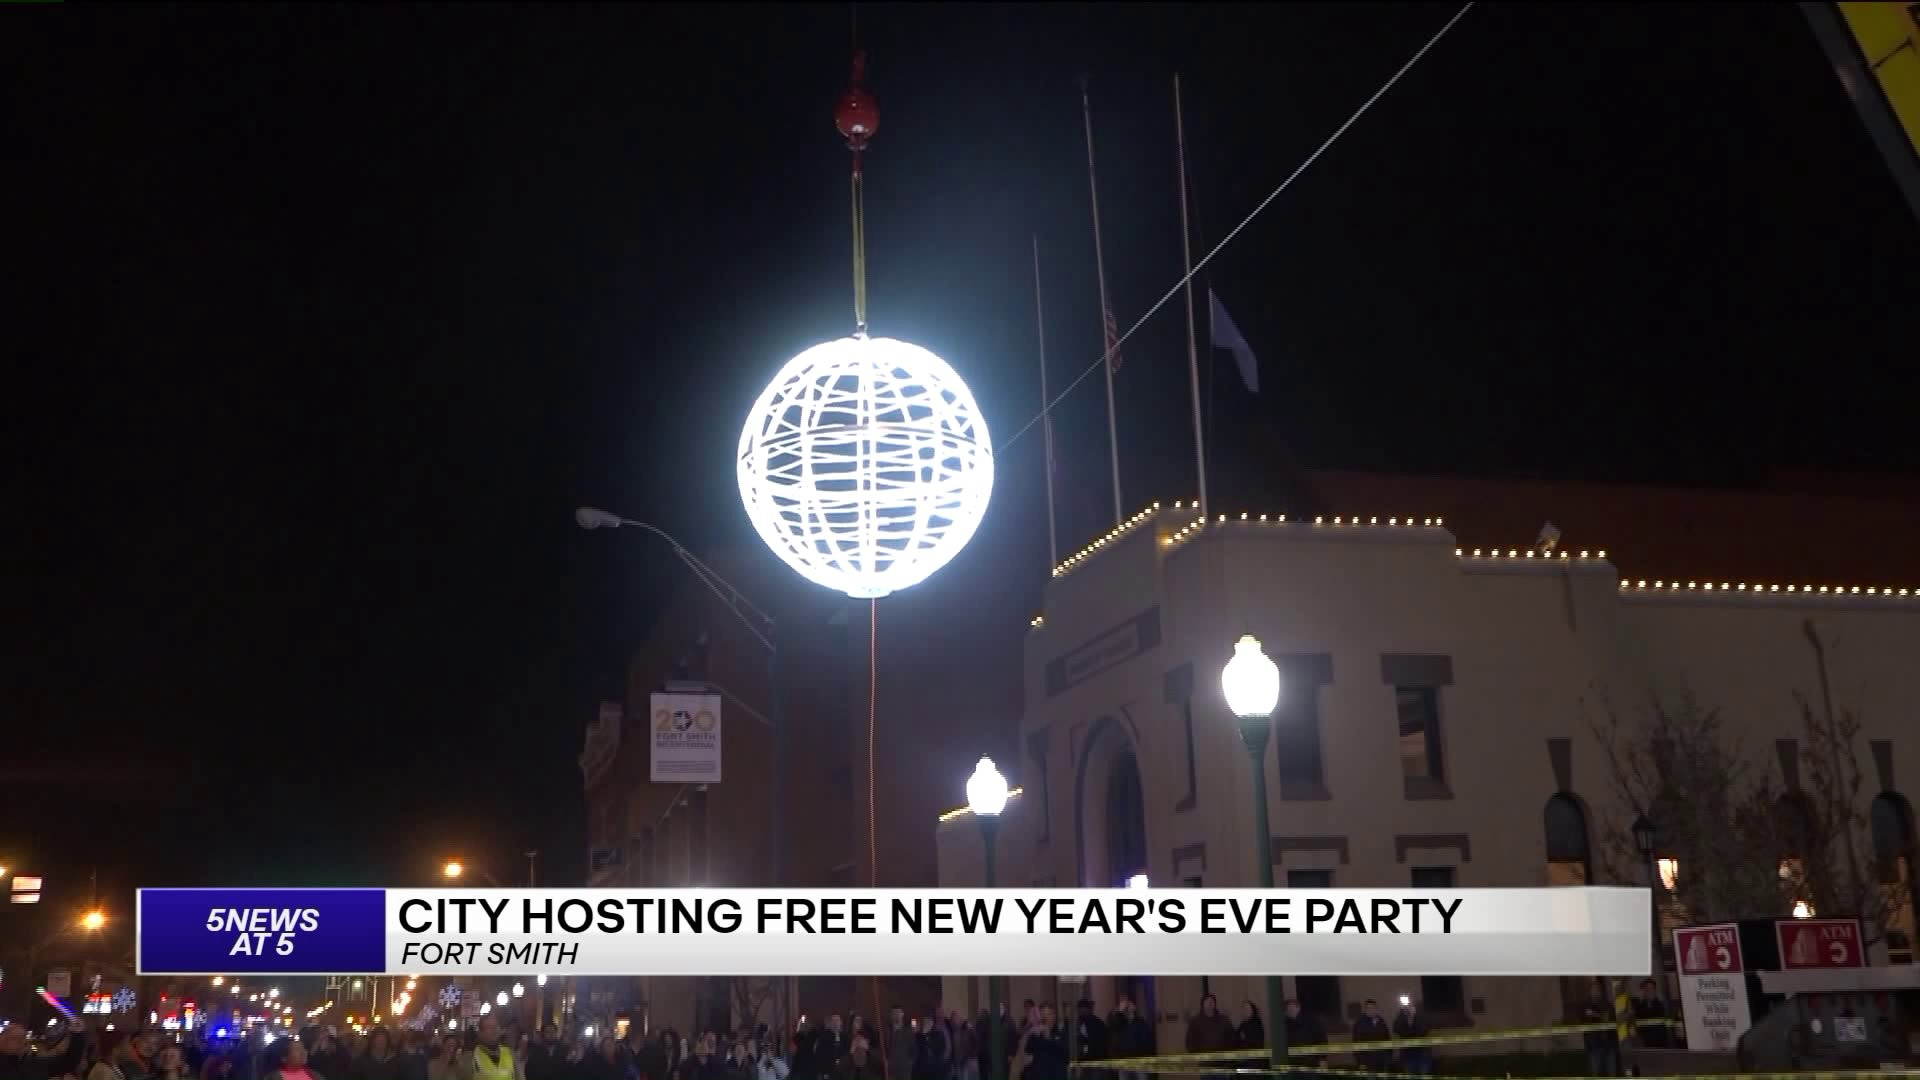 Fort Smith Christmas Lights 2020 2020 New Year's Eve Ball Drop In Fort Smith | 5newsonline.com